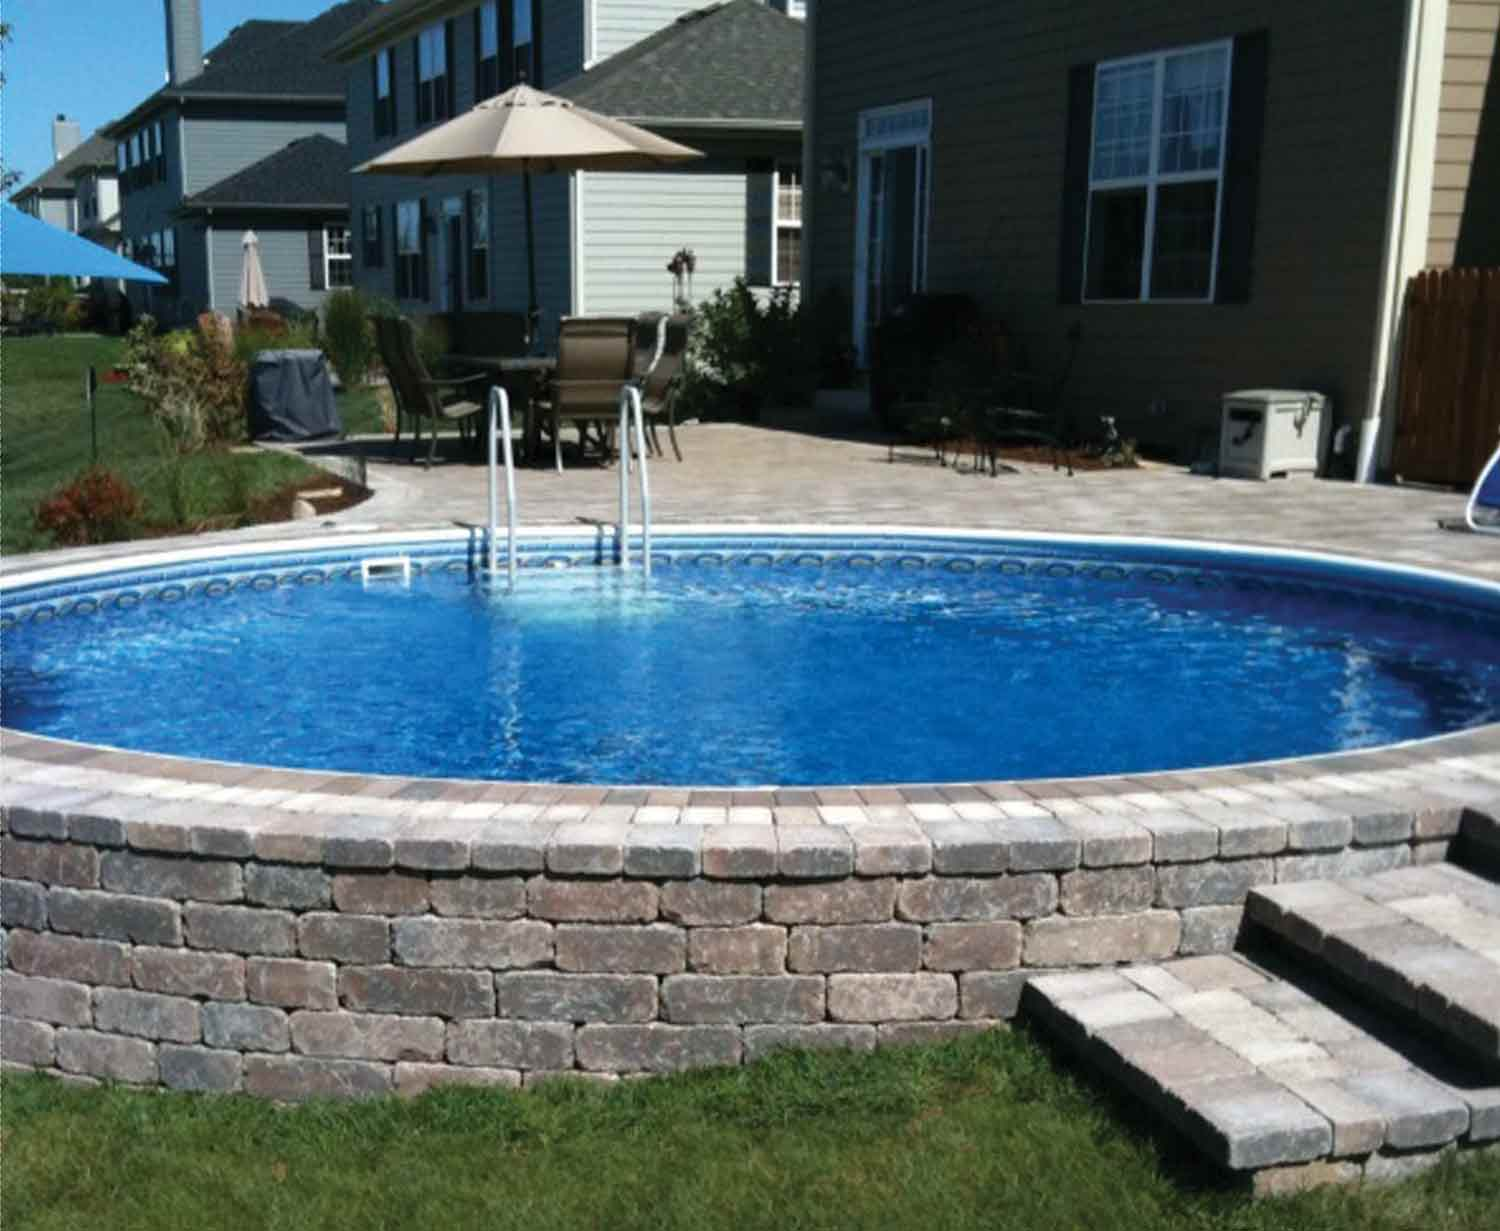 Above ground pool wayne mi in ground pools wayne mi - Largest above ground swimming pool ...